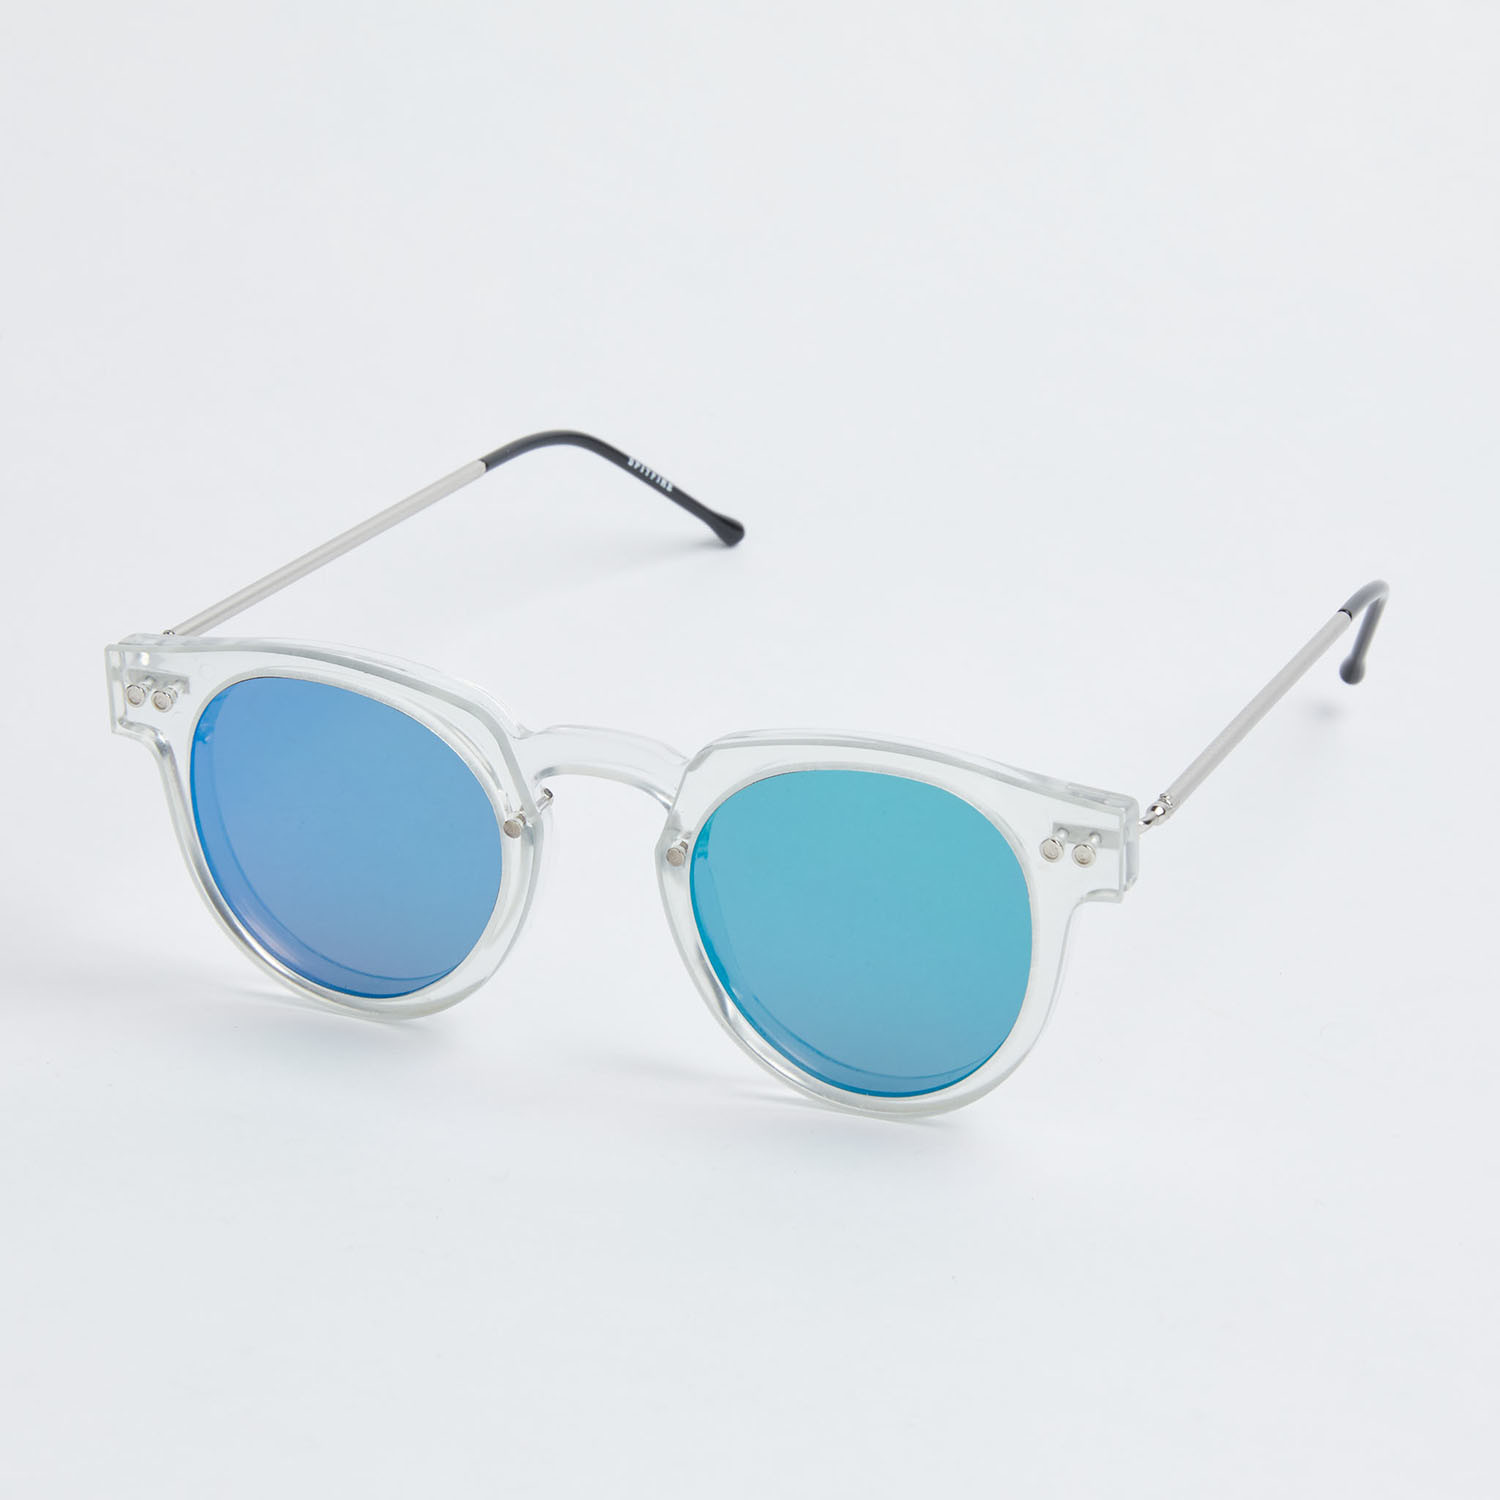 b73bc1ee2c37 1c03856b1ab4925a8f8e4d421c4c379a medium. Sharper Edge 1 Sunglasses    Clear  + Green Mirror